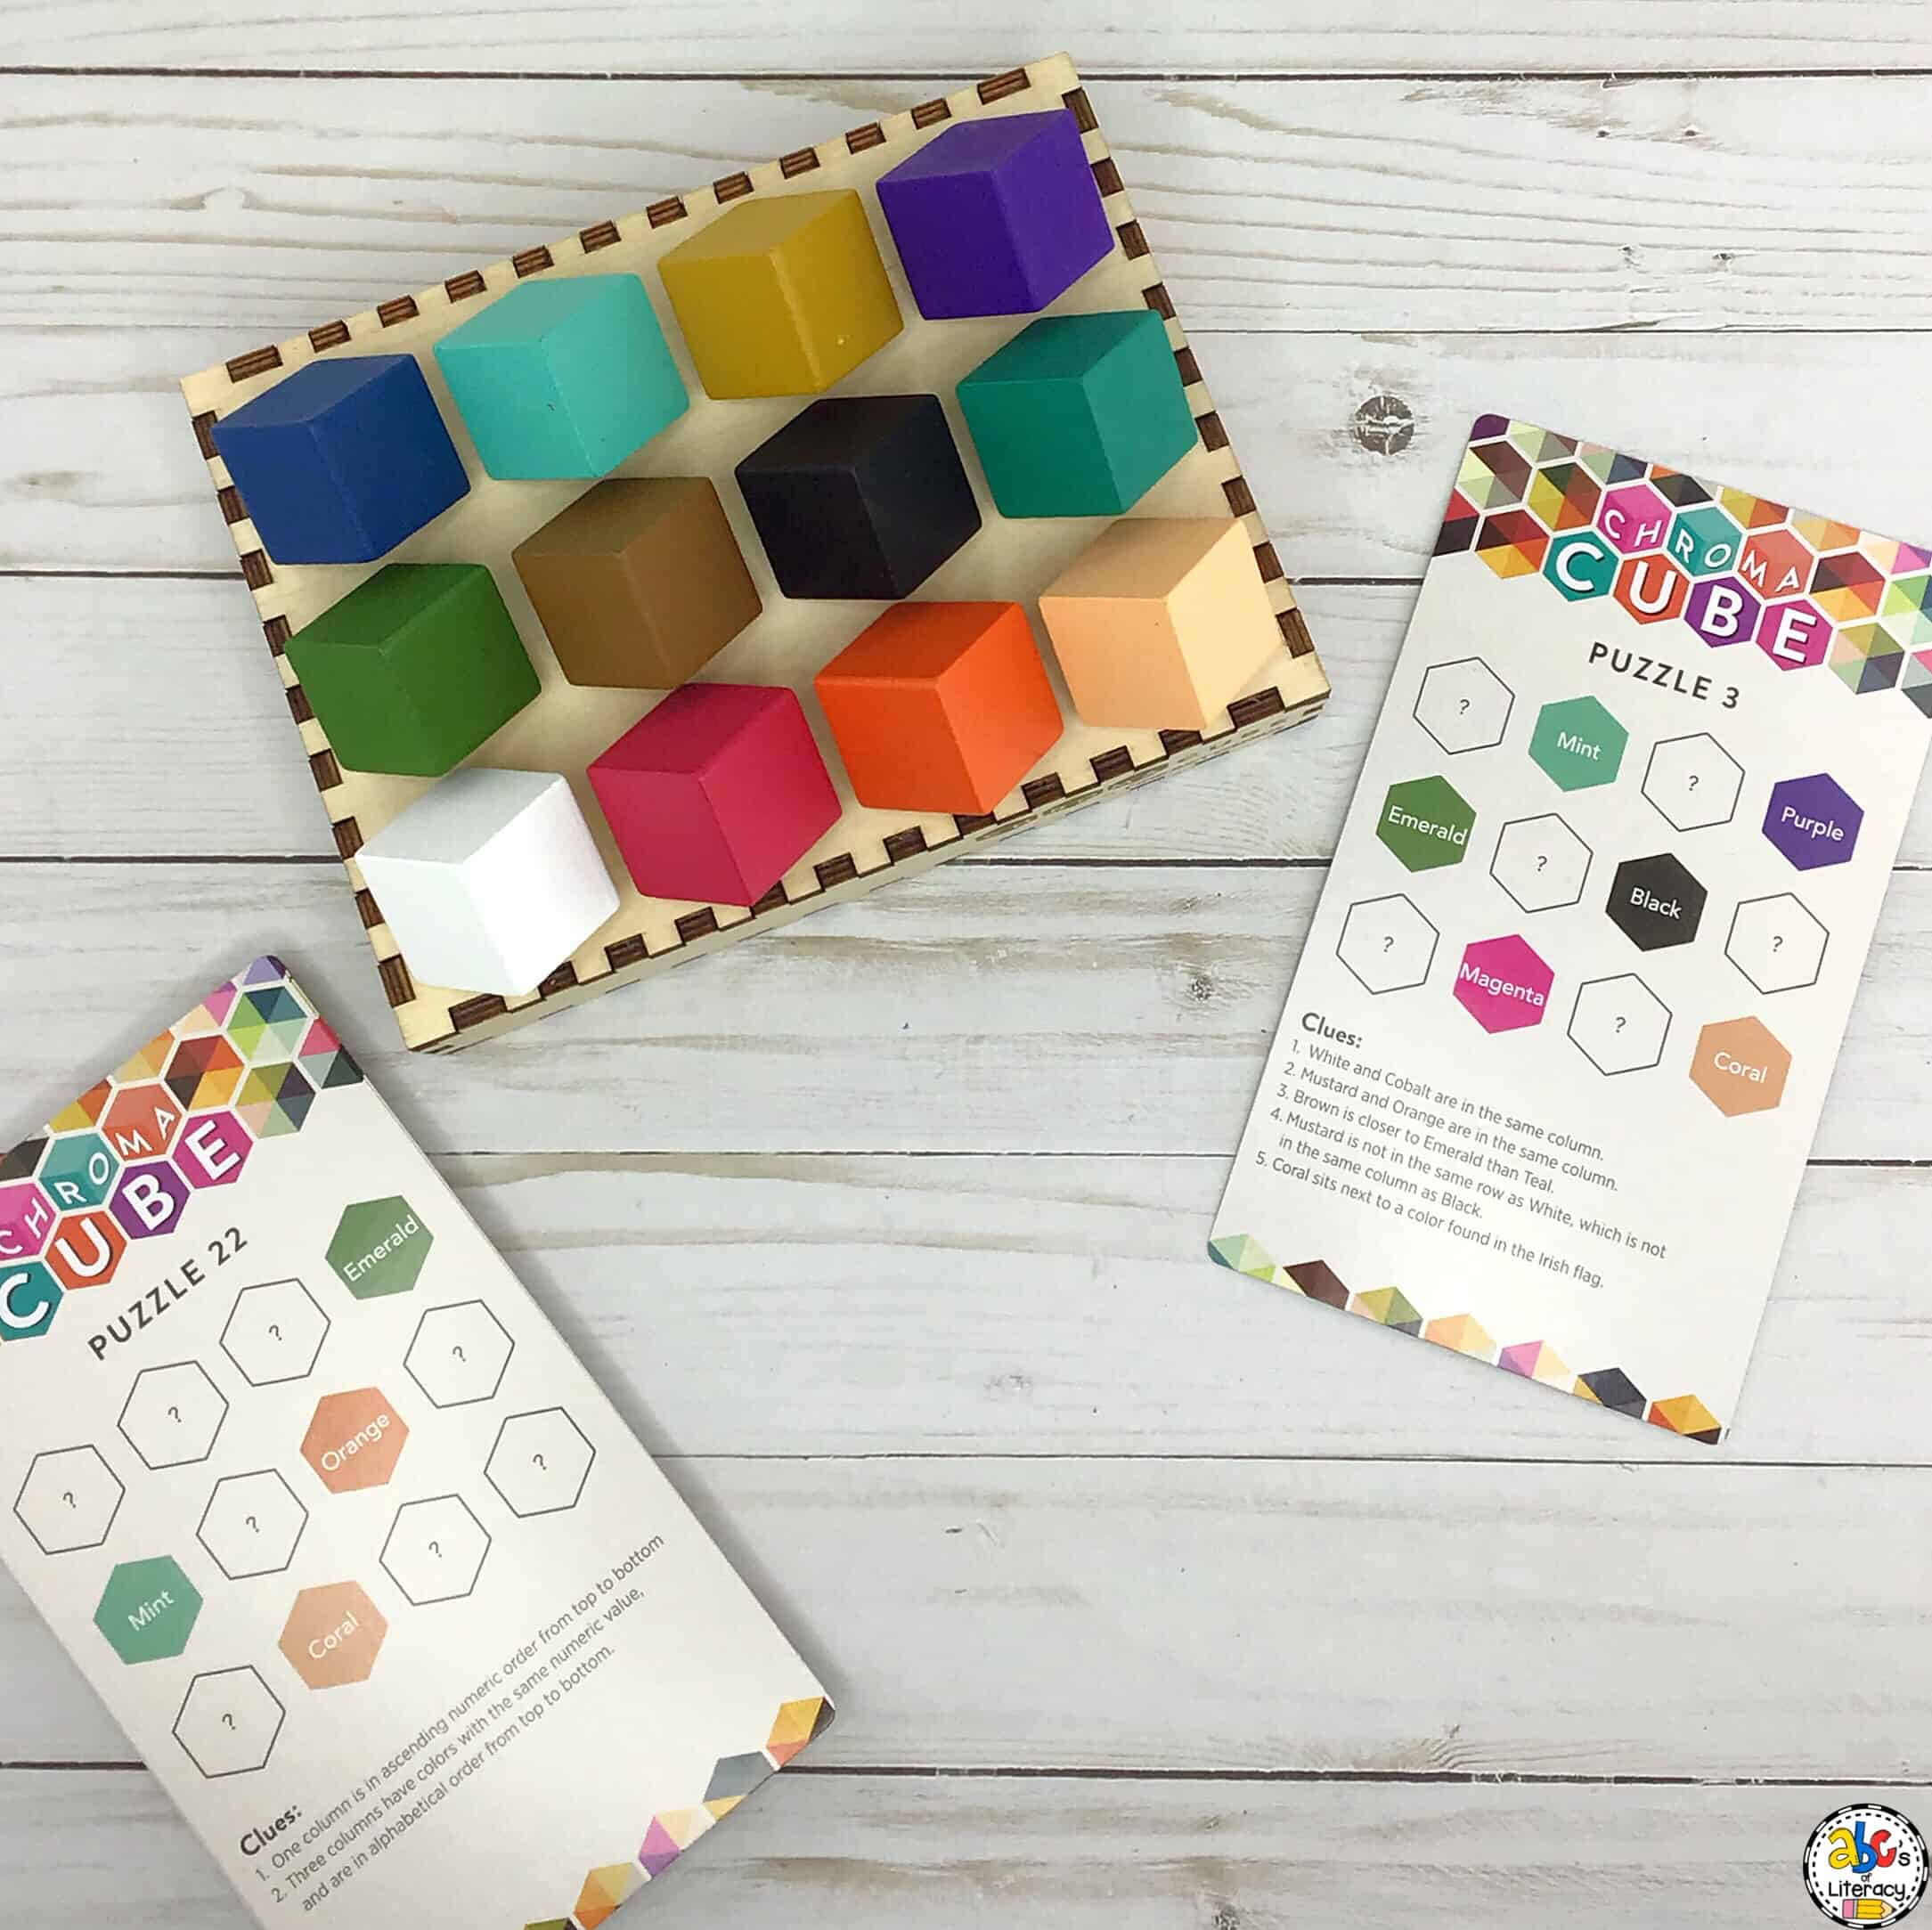 These 7 Educational Games from AMIGO Games and Project Genius are a fun way to work on = critical thinking, visual discrimination, problem solving and more!